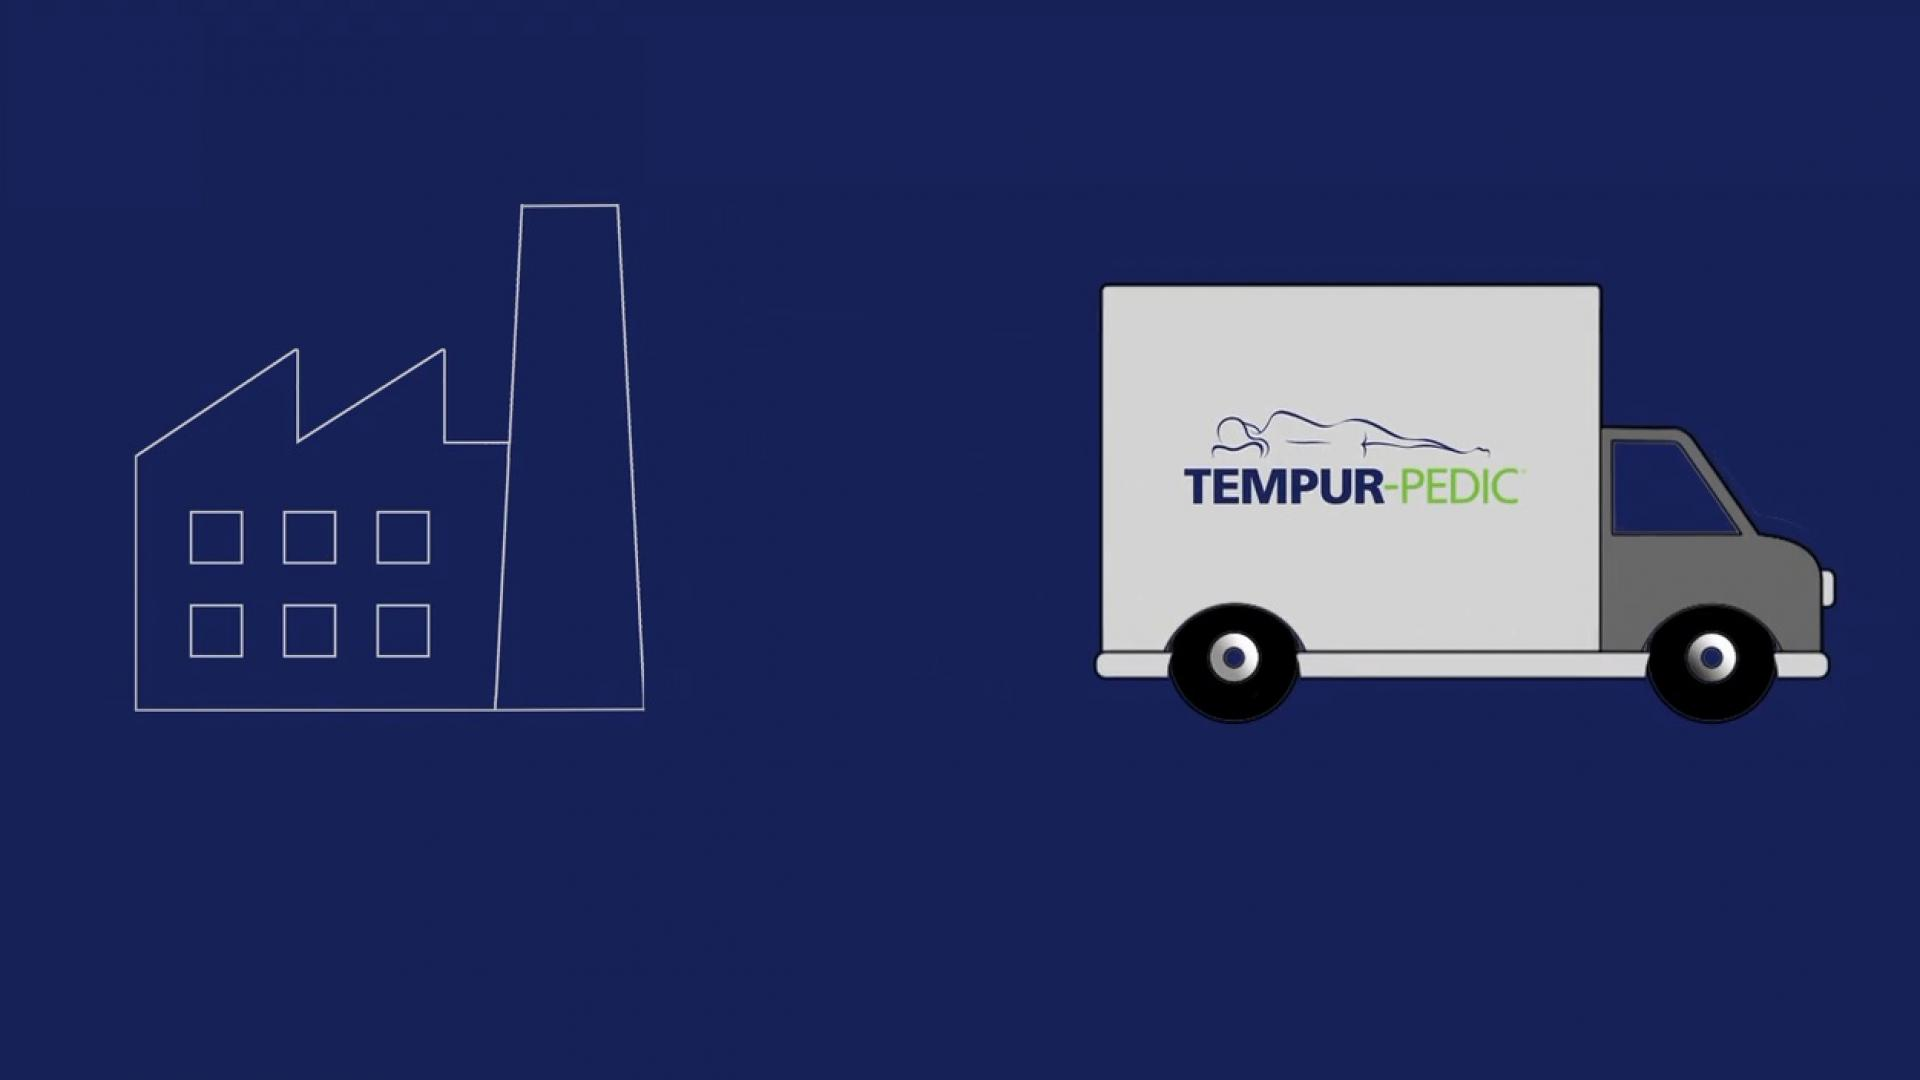 Tempur-Pedic Delivery Video